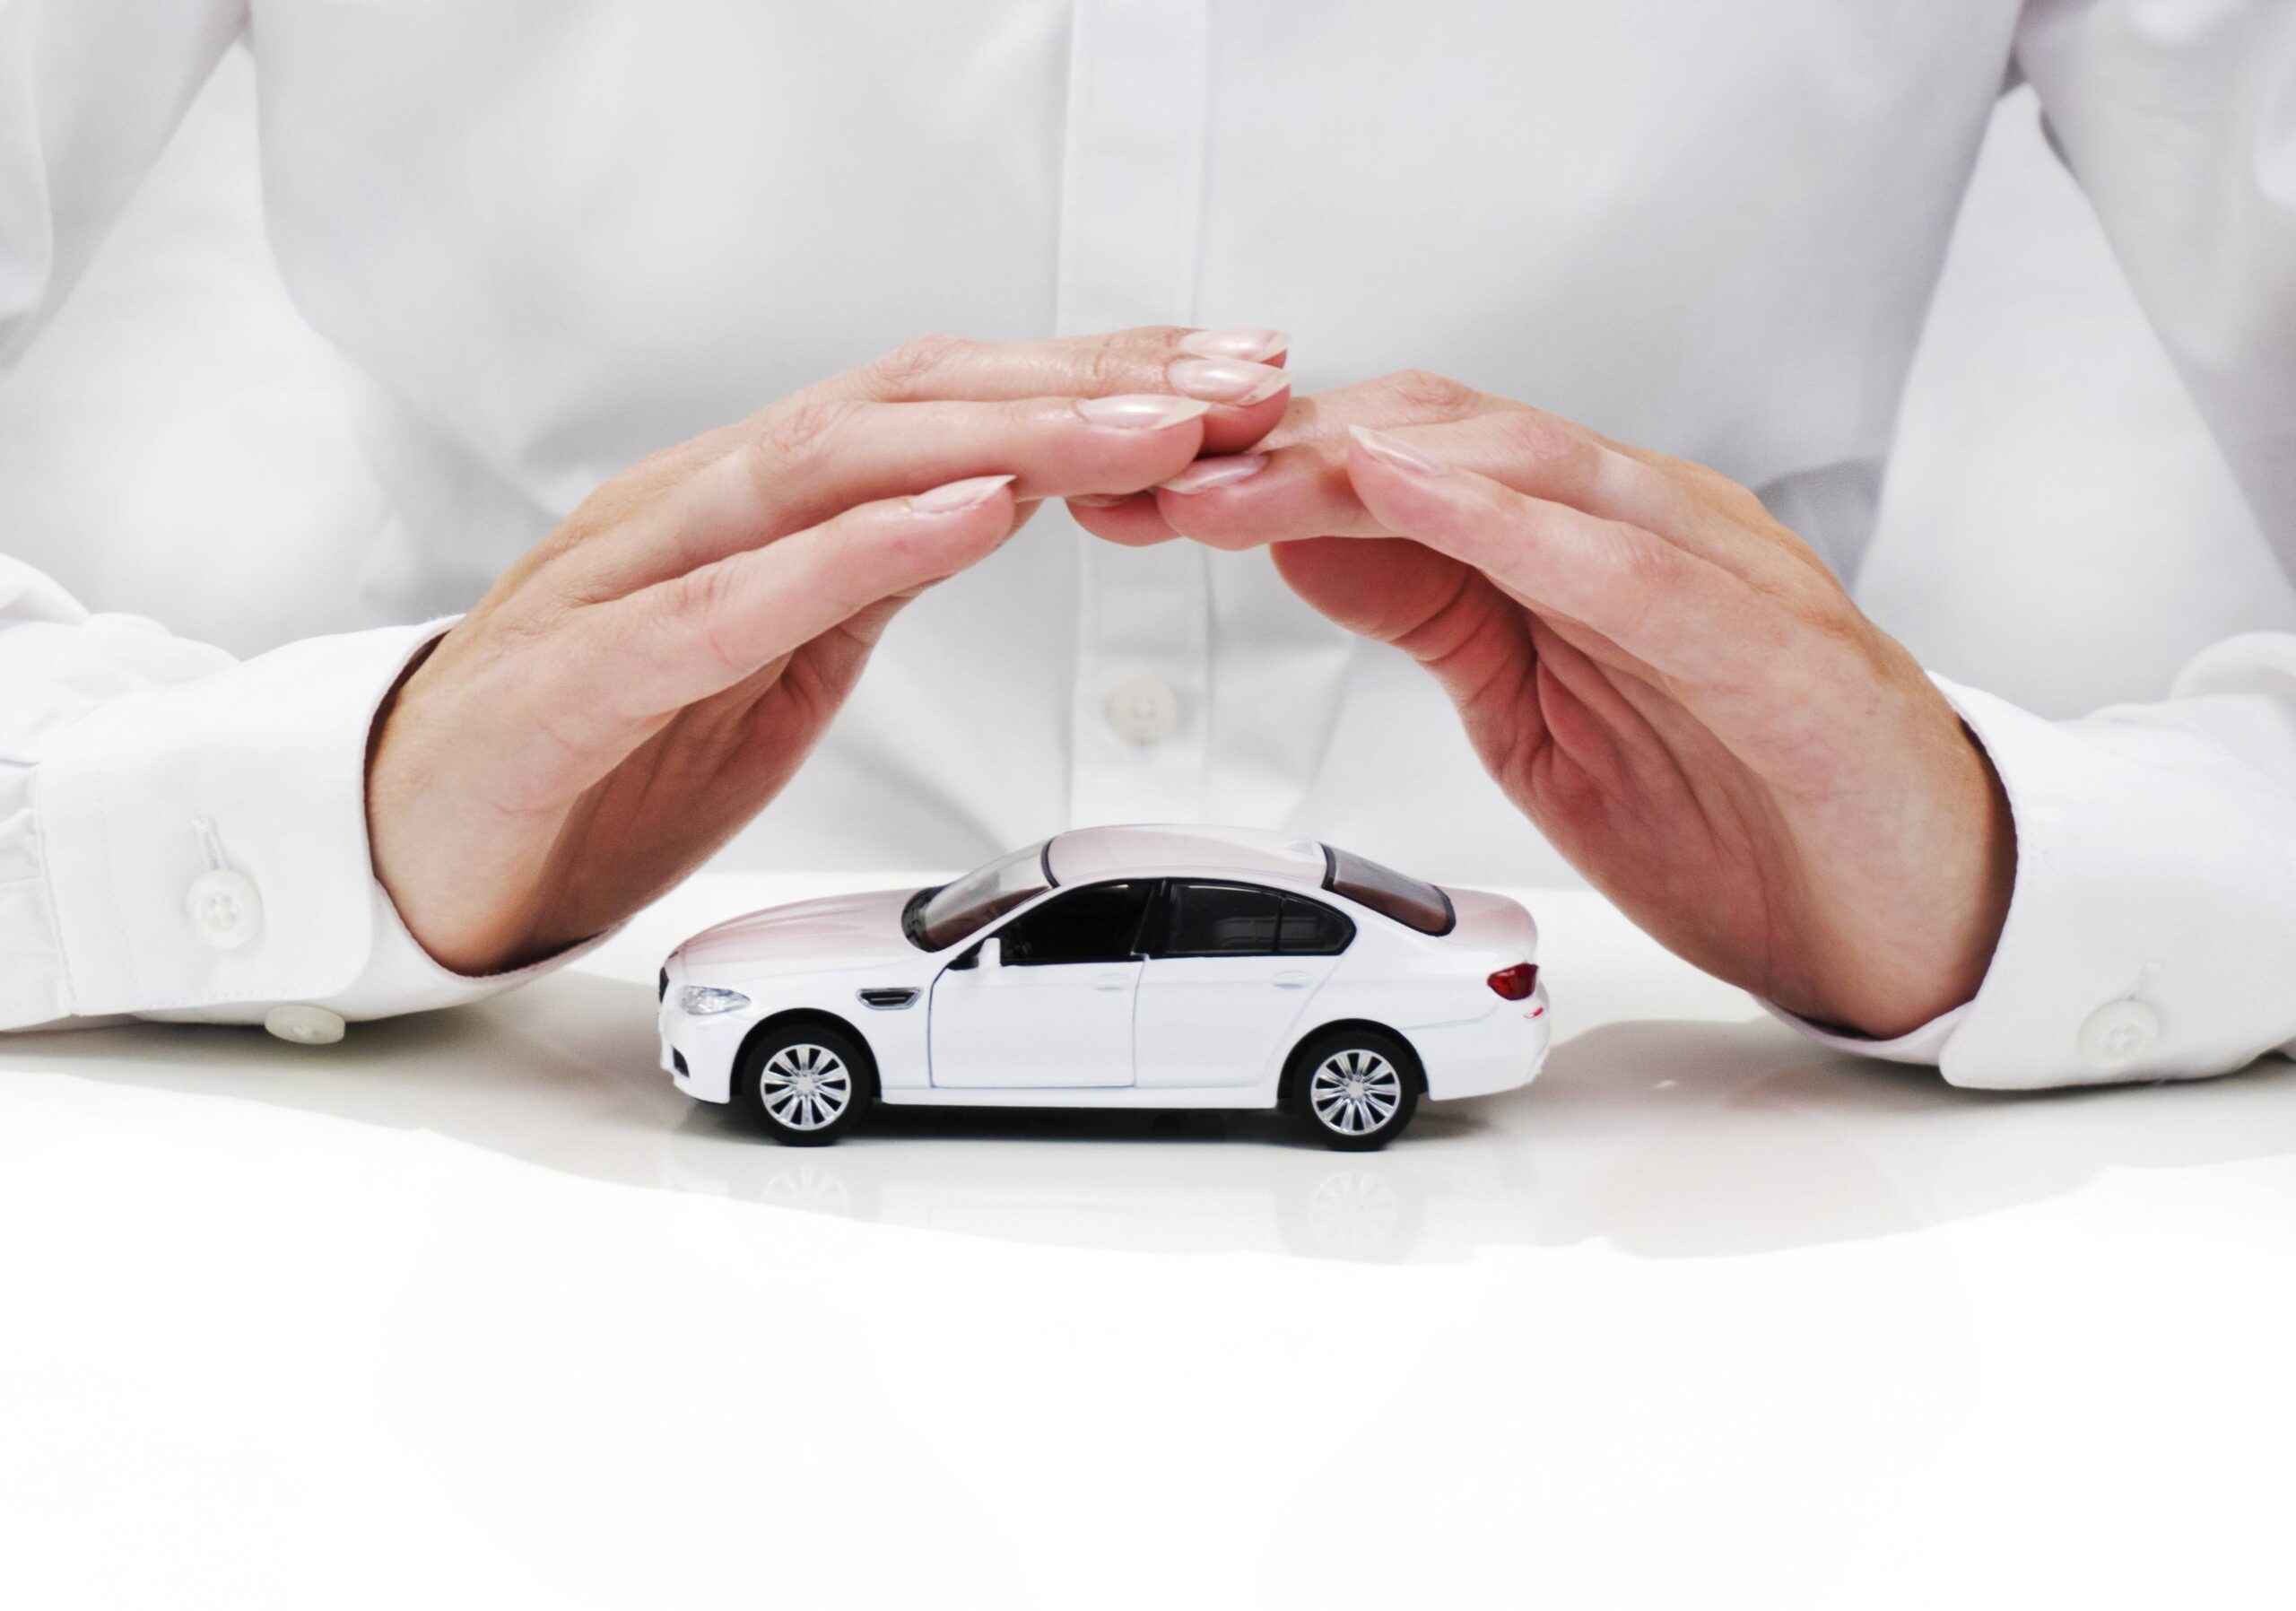 How to Get the Best Auto Insurance Without Paying Too Much